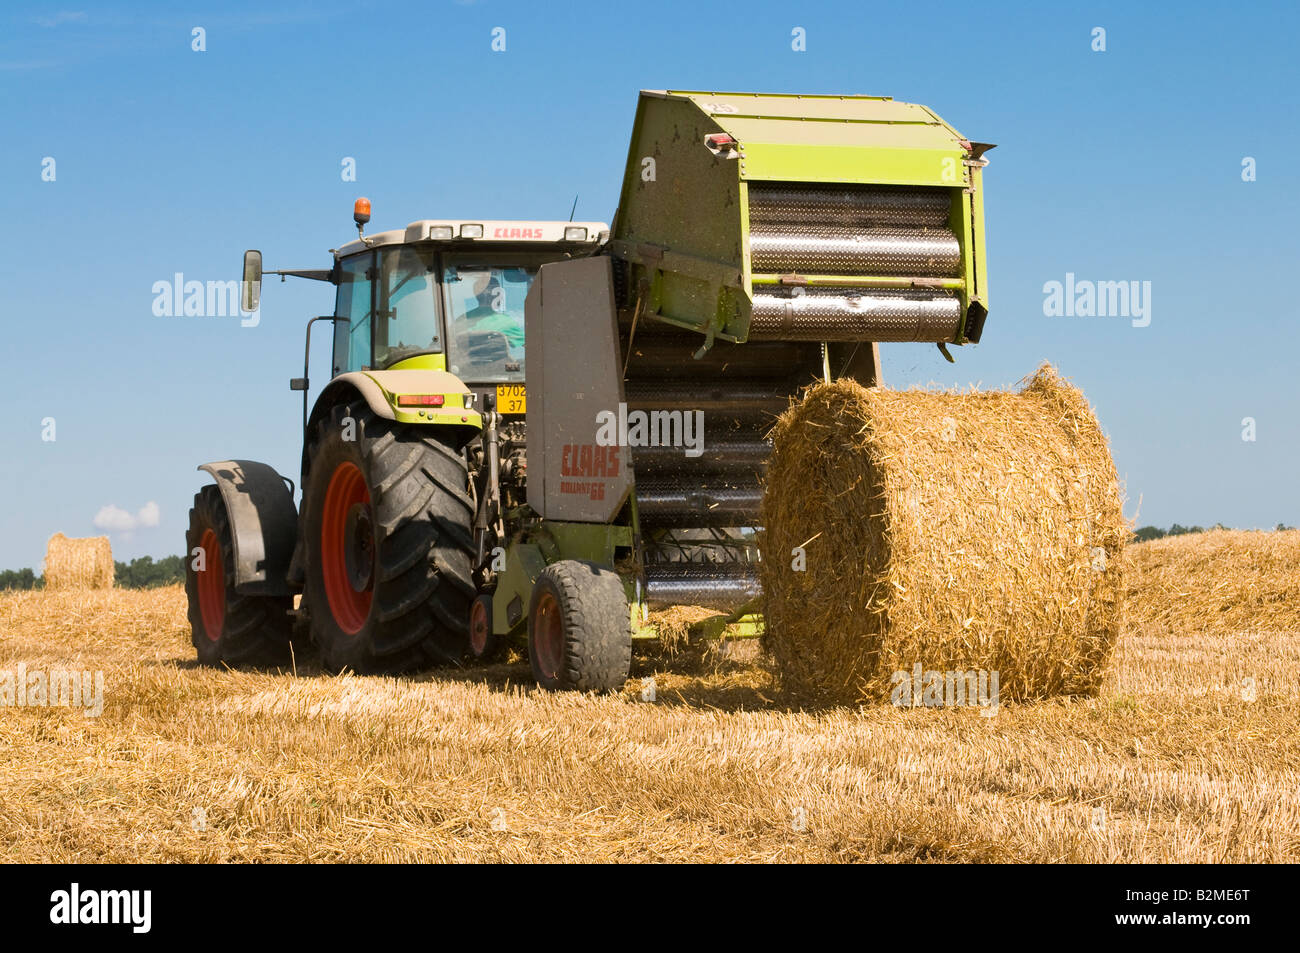 claas ares 826 rz and claas rollant 66 straw baler at work stock rh alamy com Claas Round Baler 250 Claas Baler